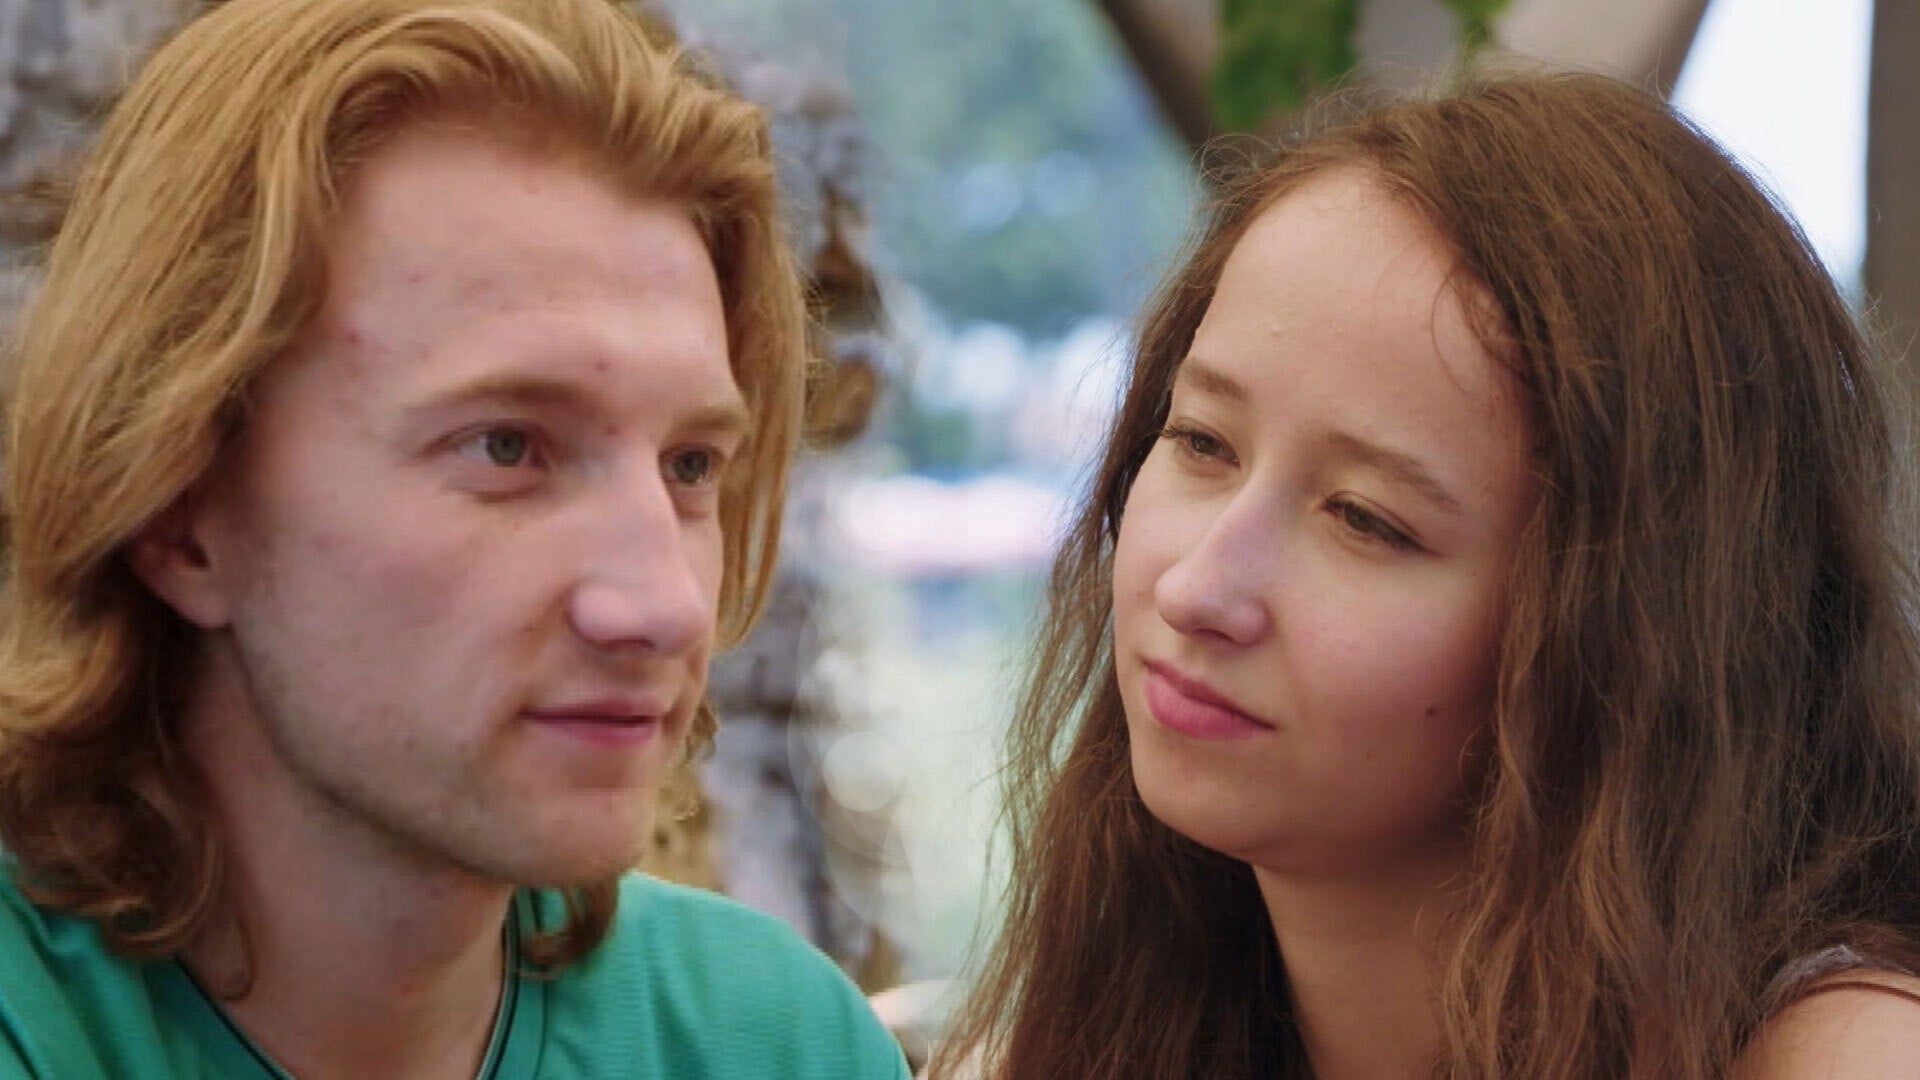 '90 Day Fiancé: The Other Way' airs Sunday at 8 p.m. ET/PT on TLC.